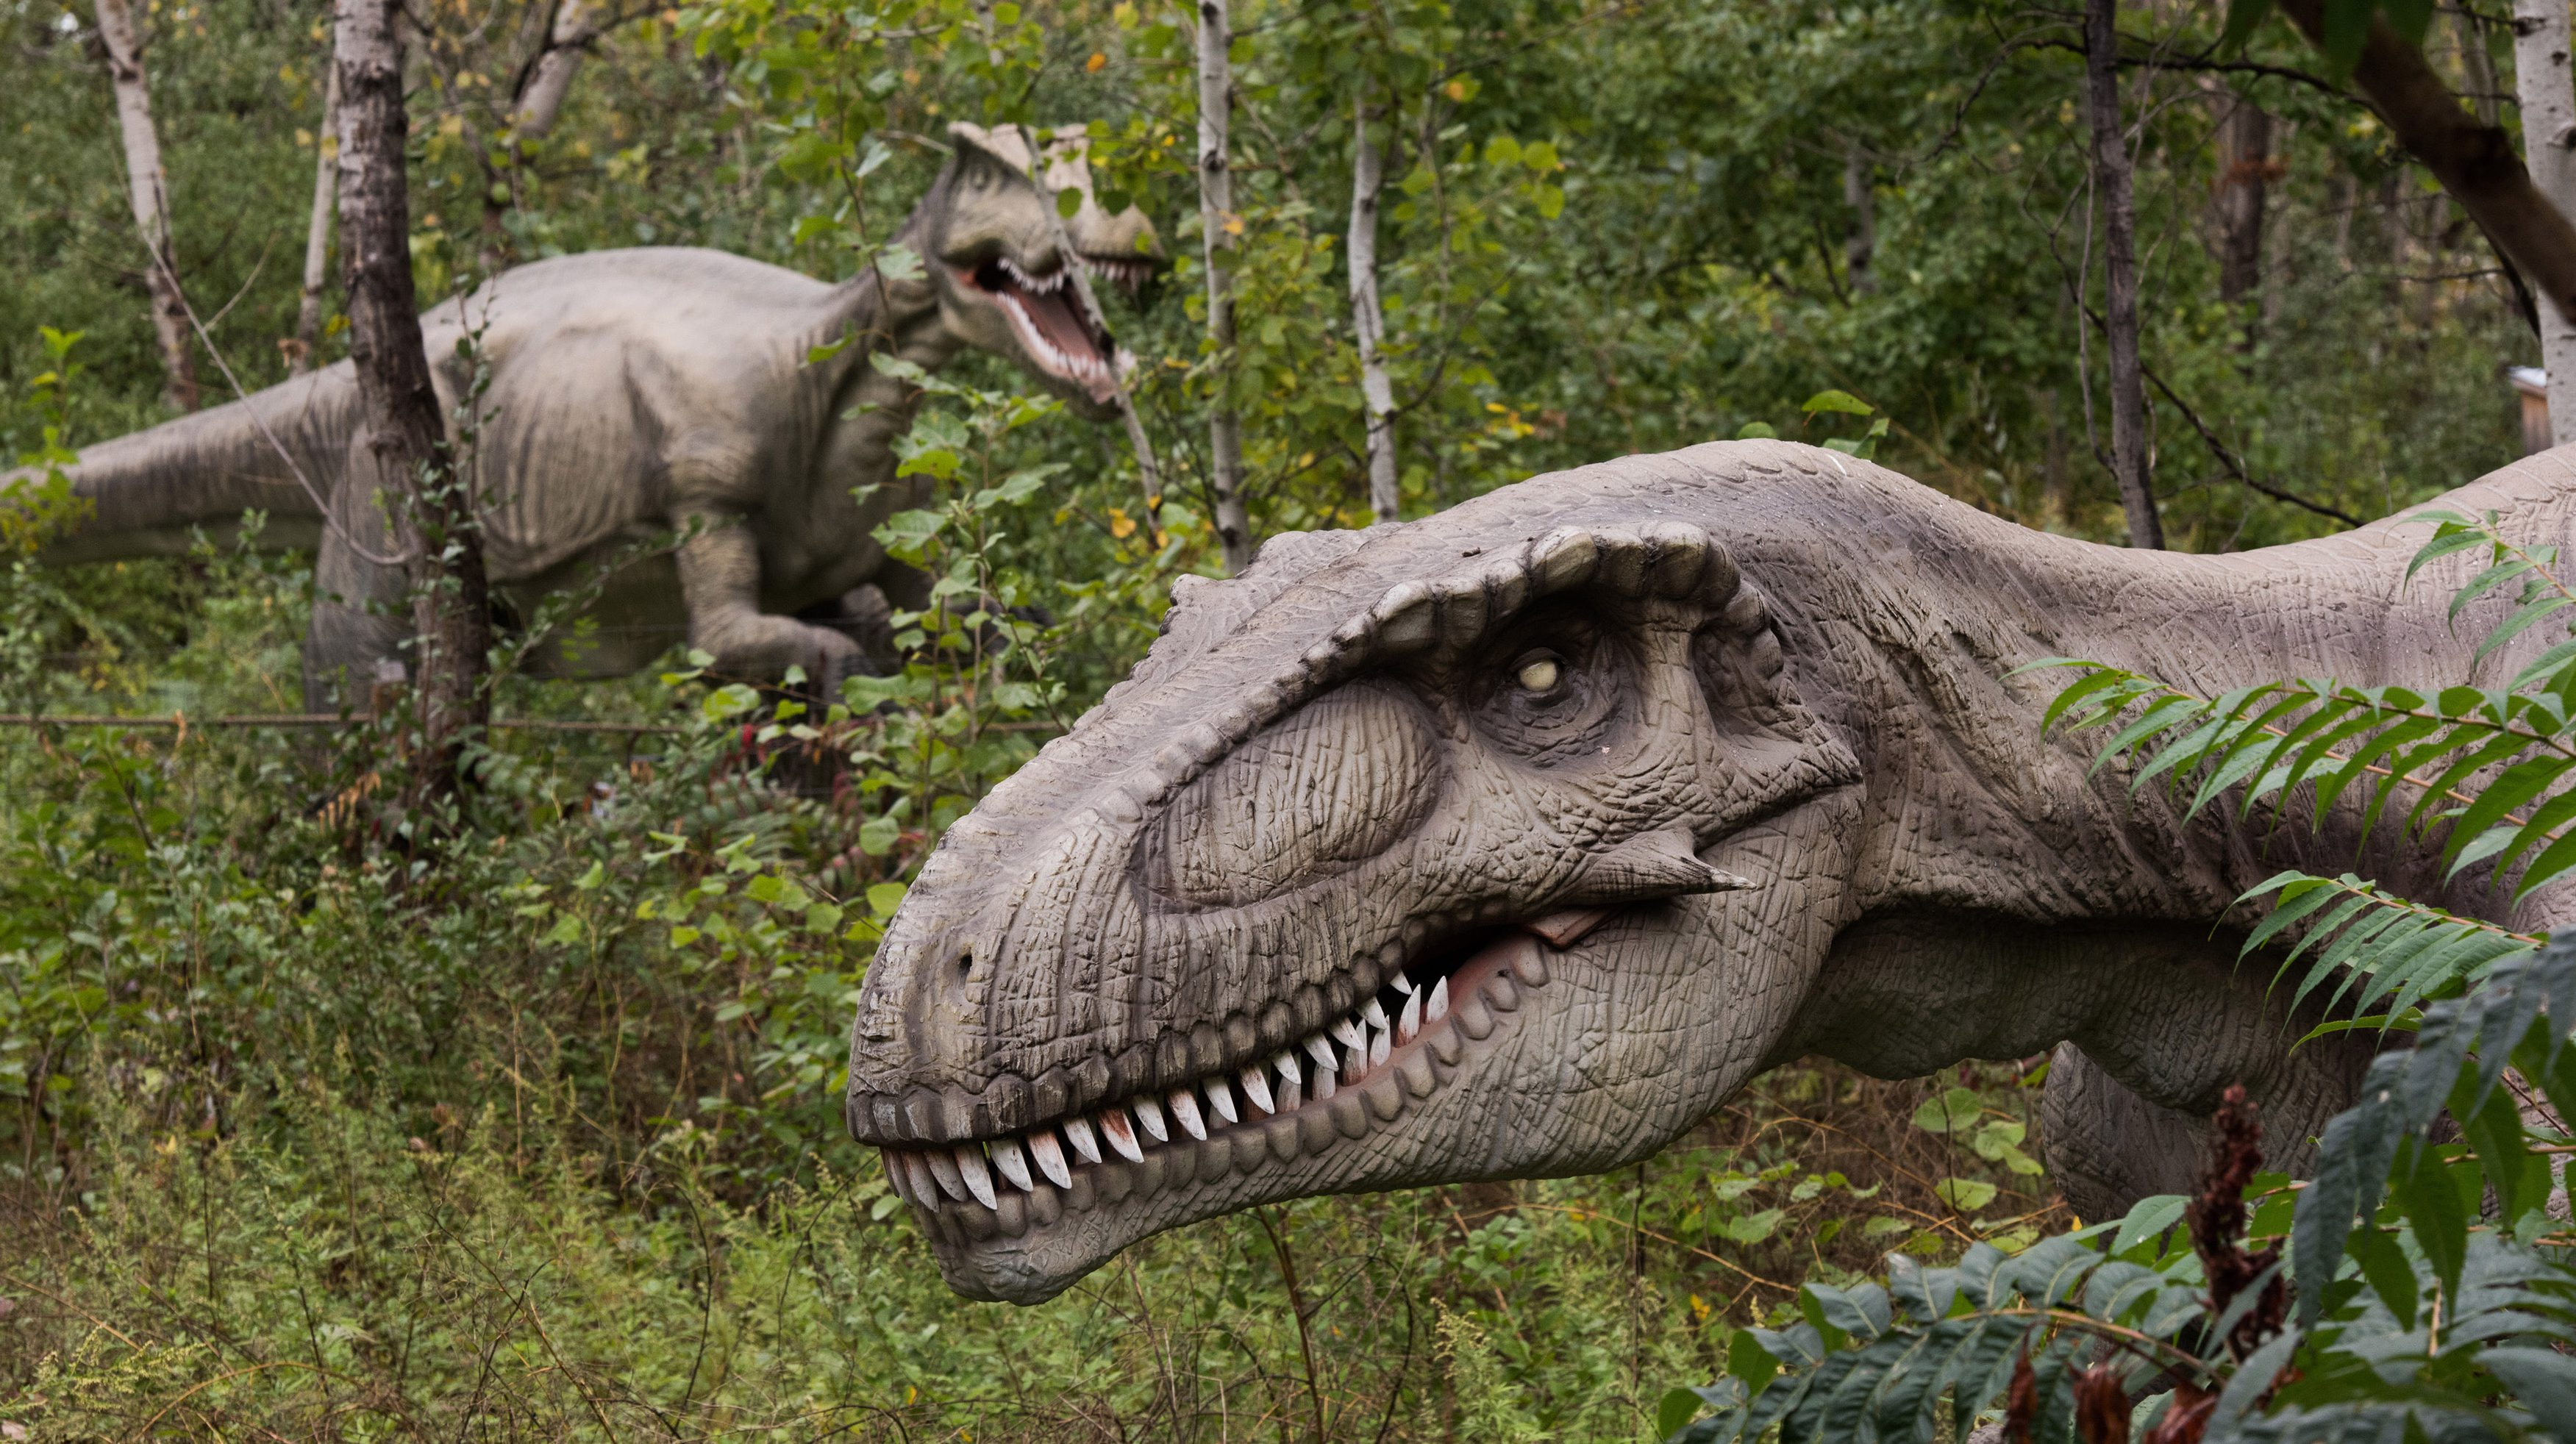 Field Station: Dinosaurs in New Jersey